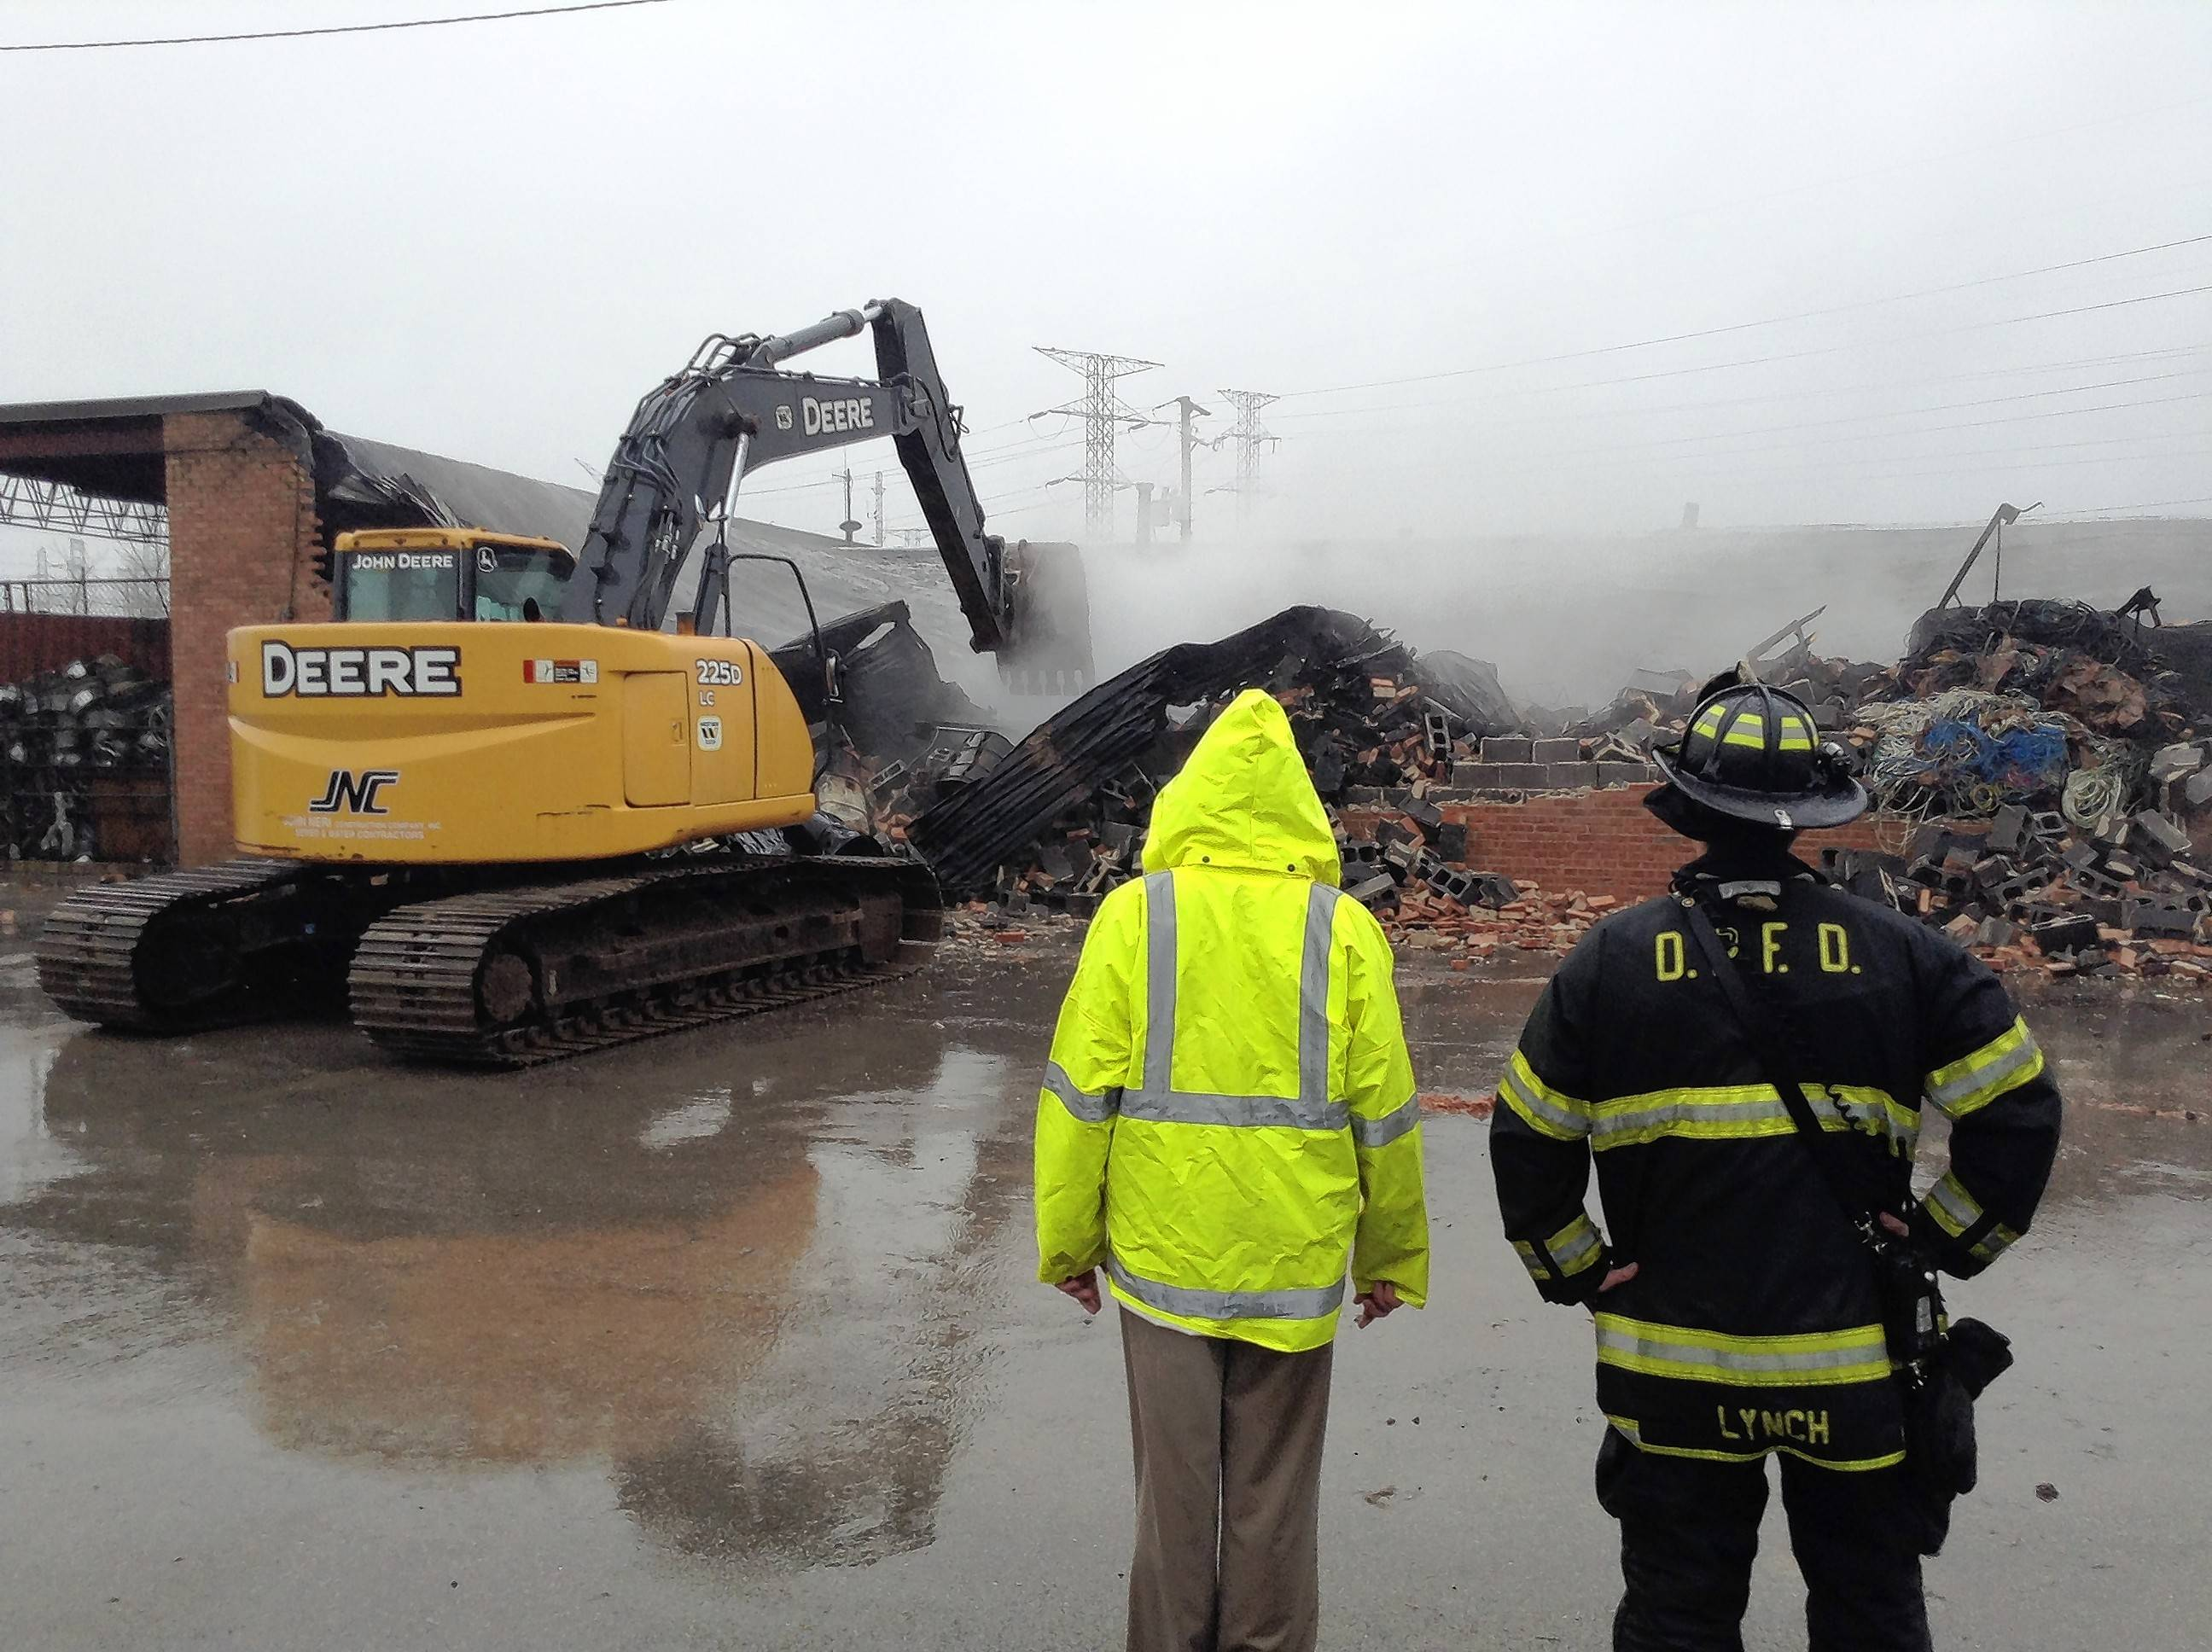 A backhoe rips apart the collapsed roof of a scrap metal recycling facility Thursday in Des Plaines, where a massive fire occurred overnight.